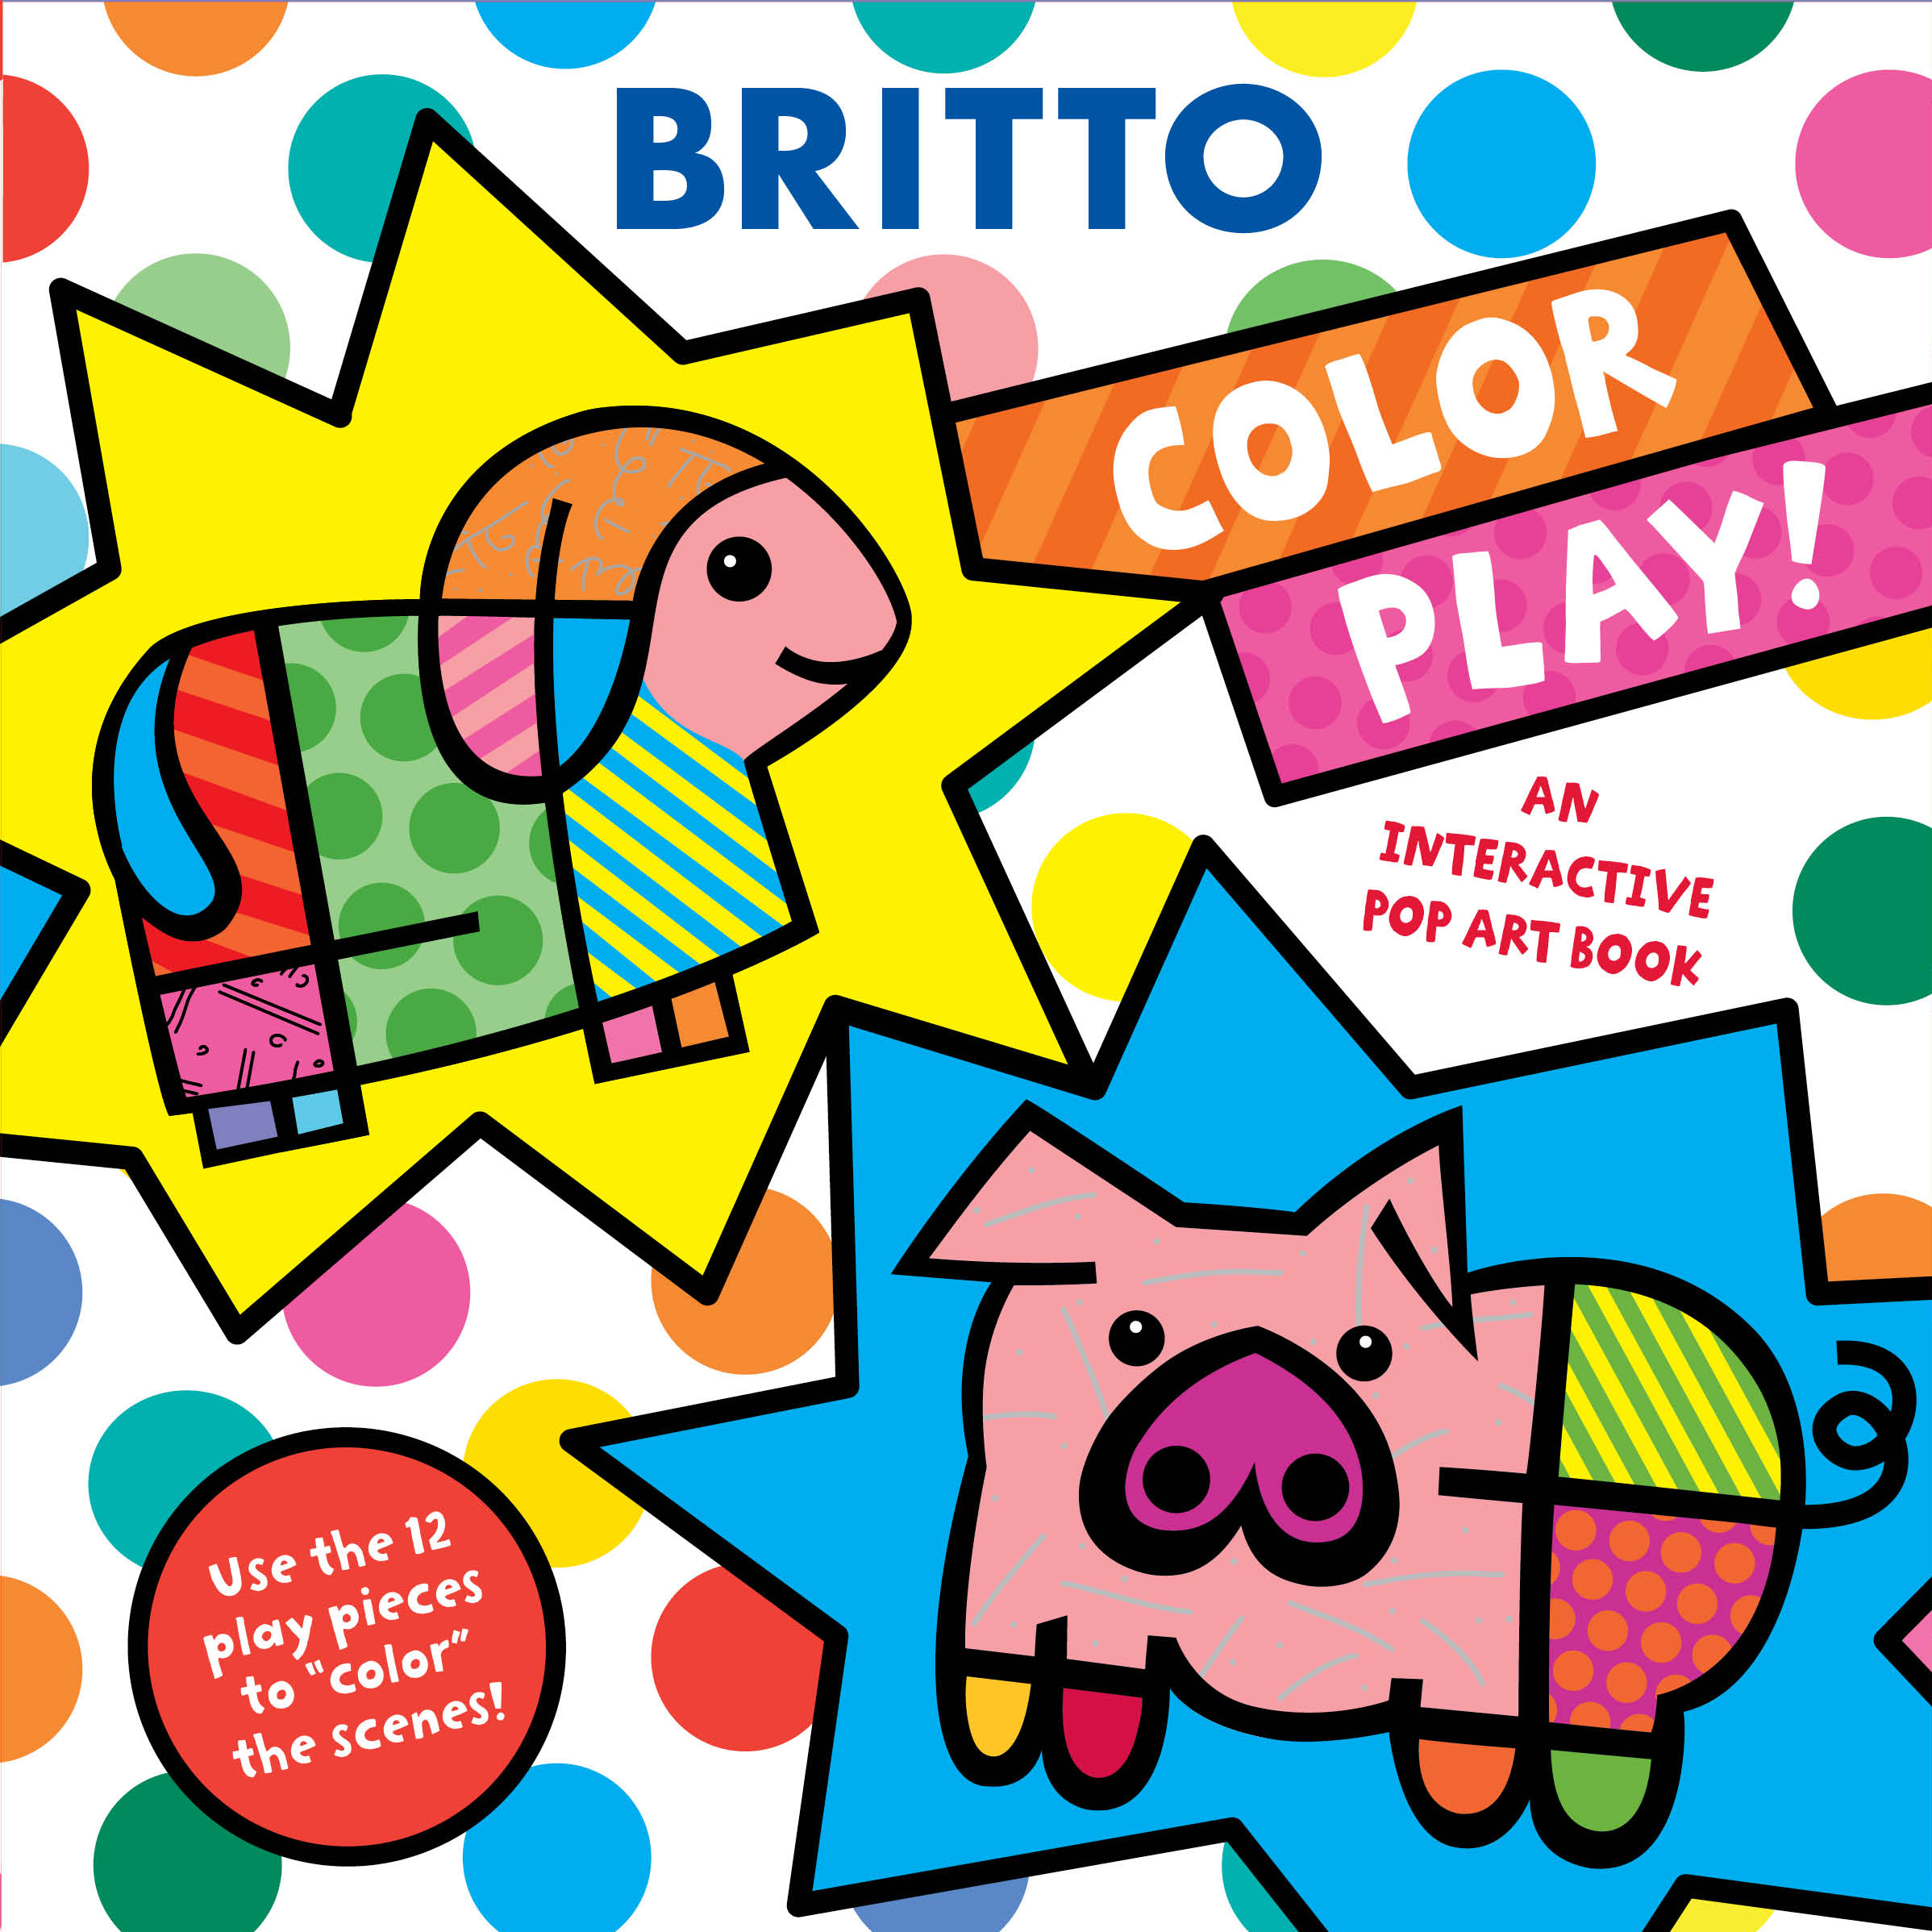 Color Play Book By Romero Britto Official Publisher Page The Colorplay Cover Image